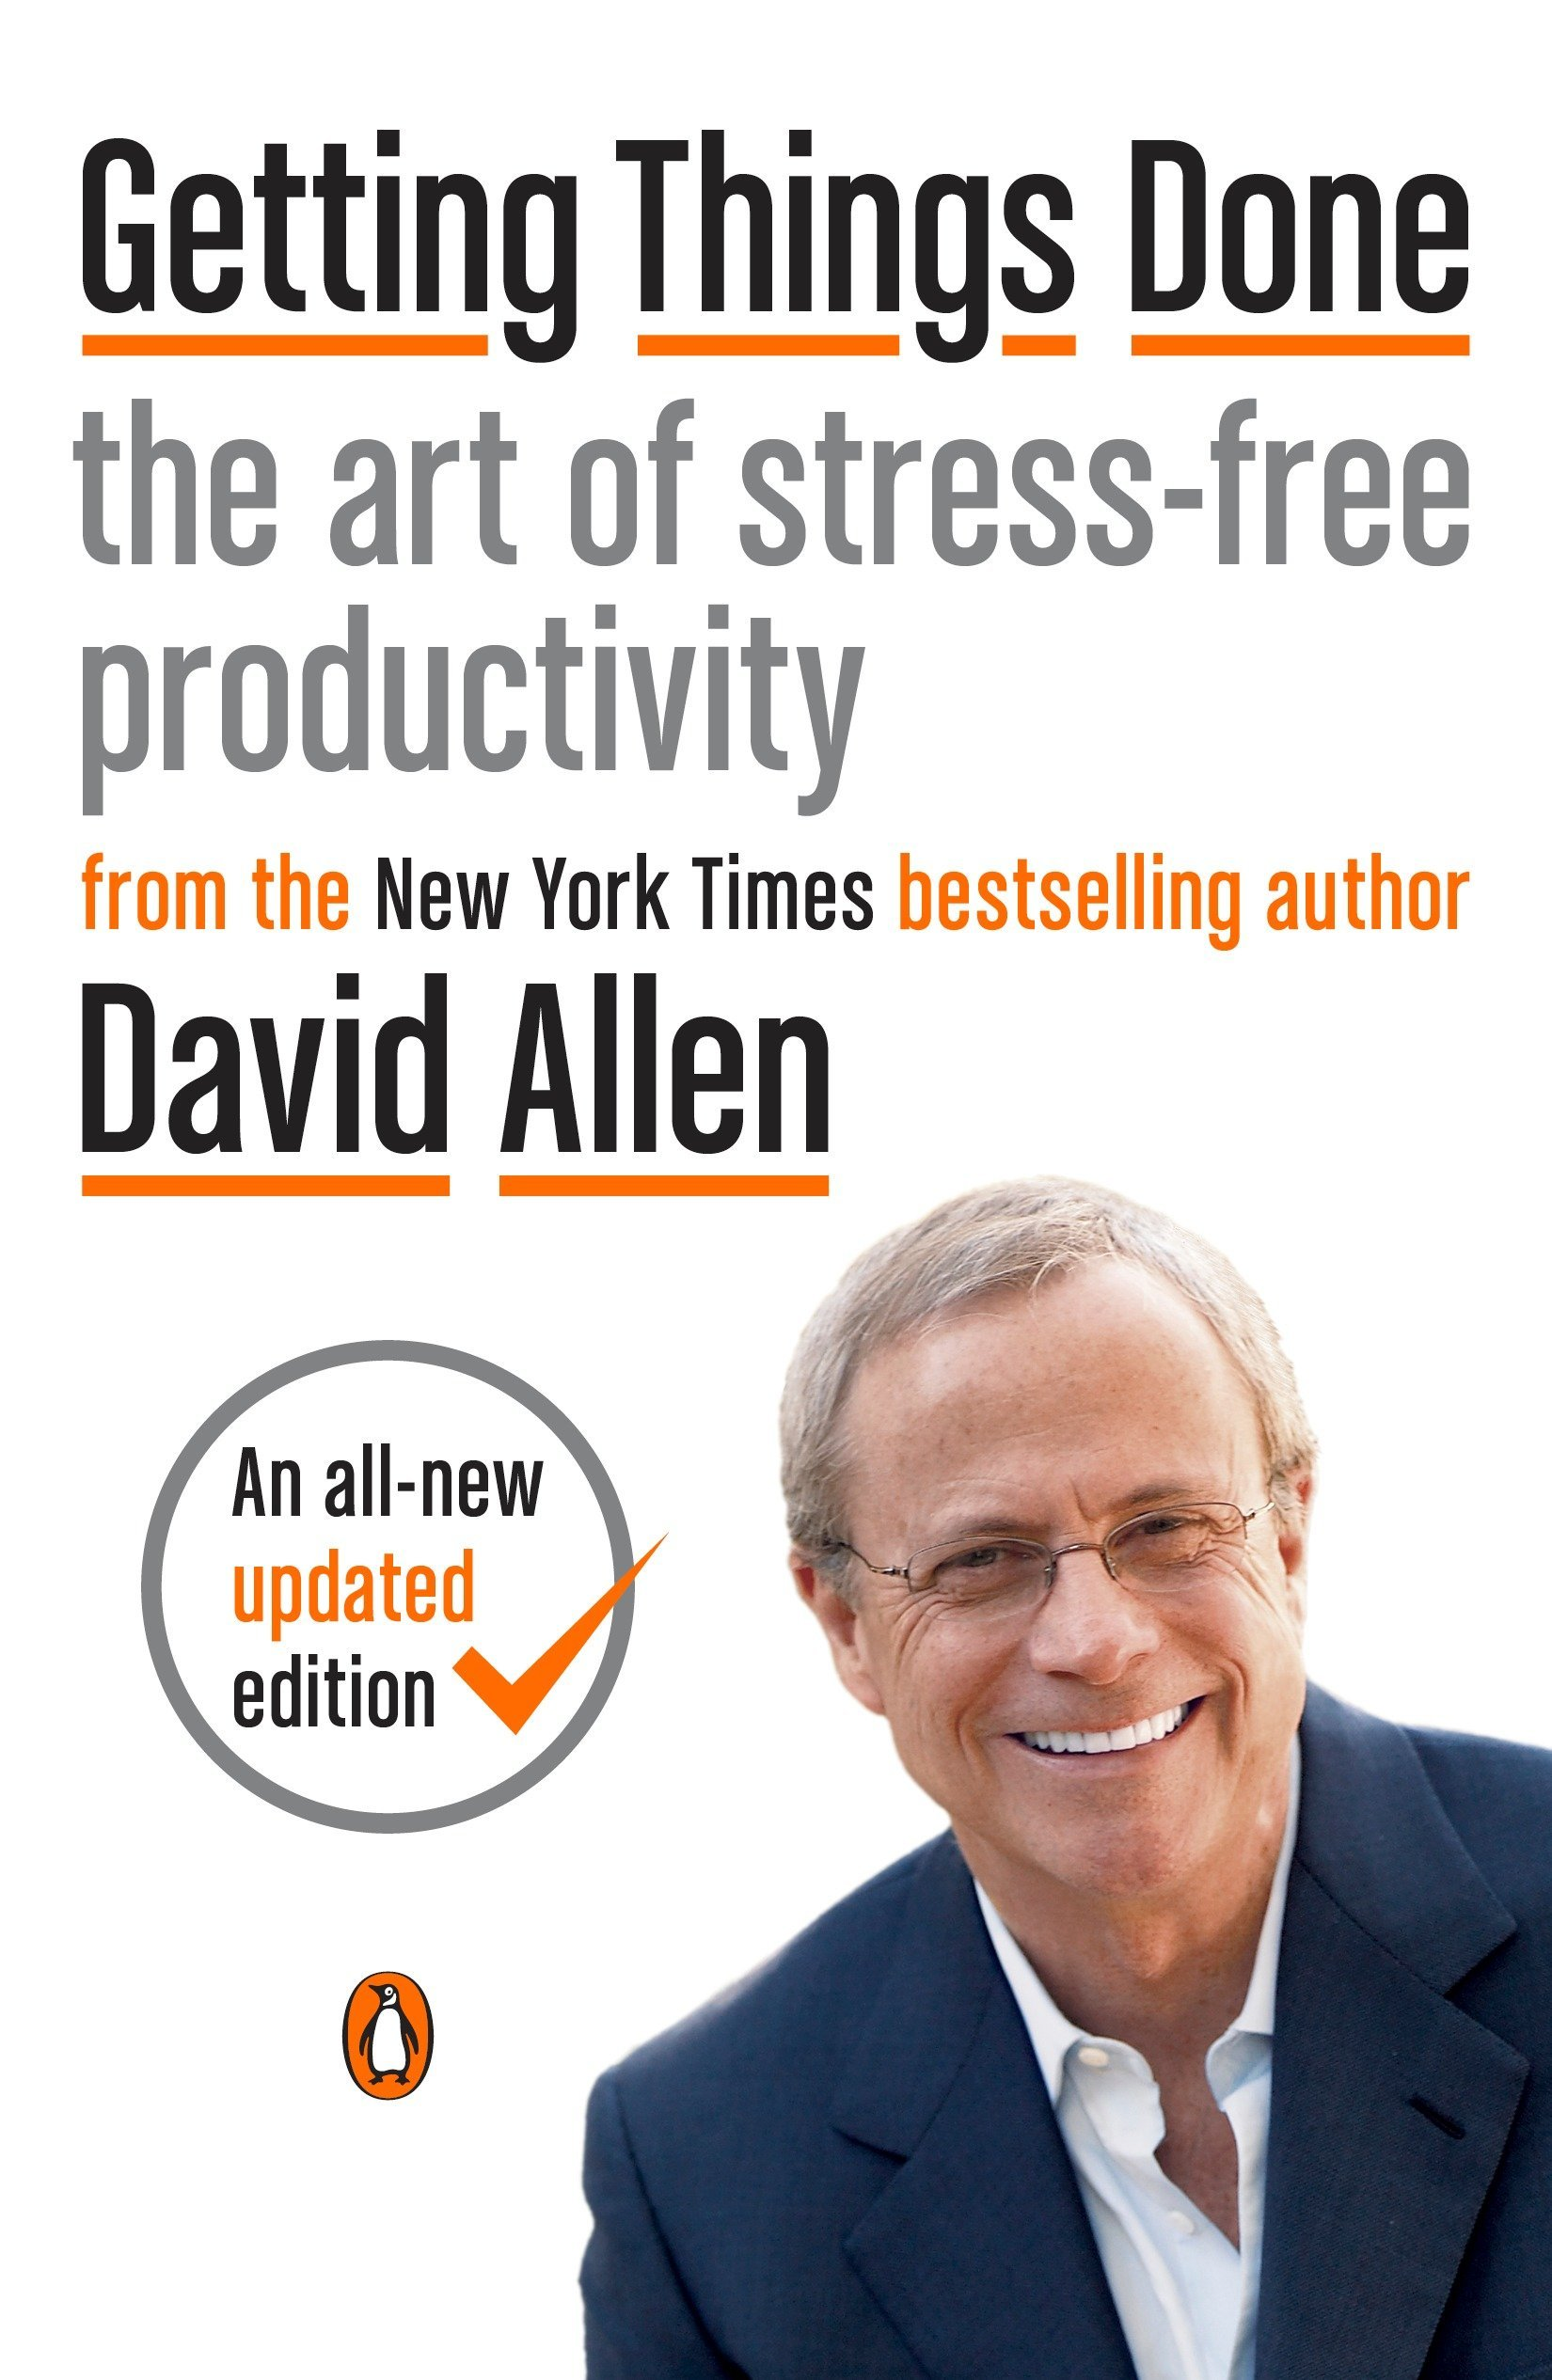 Getting Things Done: The Art of Stress-Free Productivity Copertina flessibile – 17 mar 2015 David Allen James Fallows Penguin Group USA 0143126563